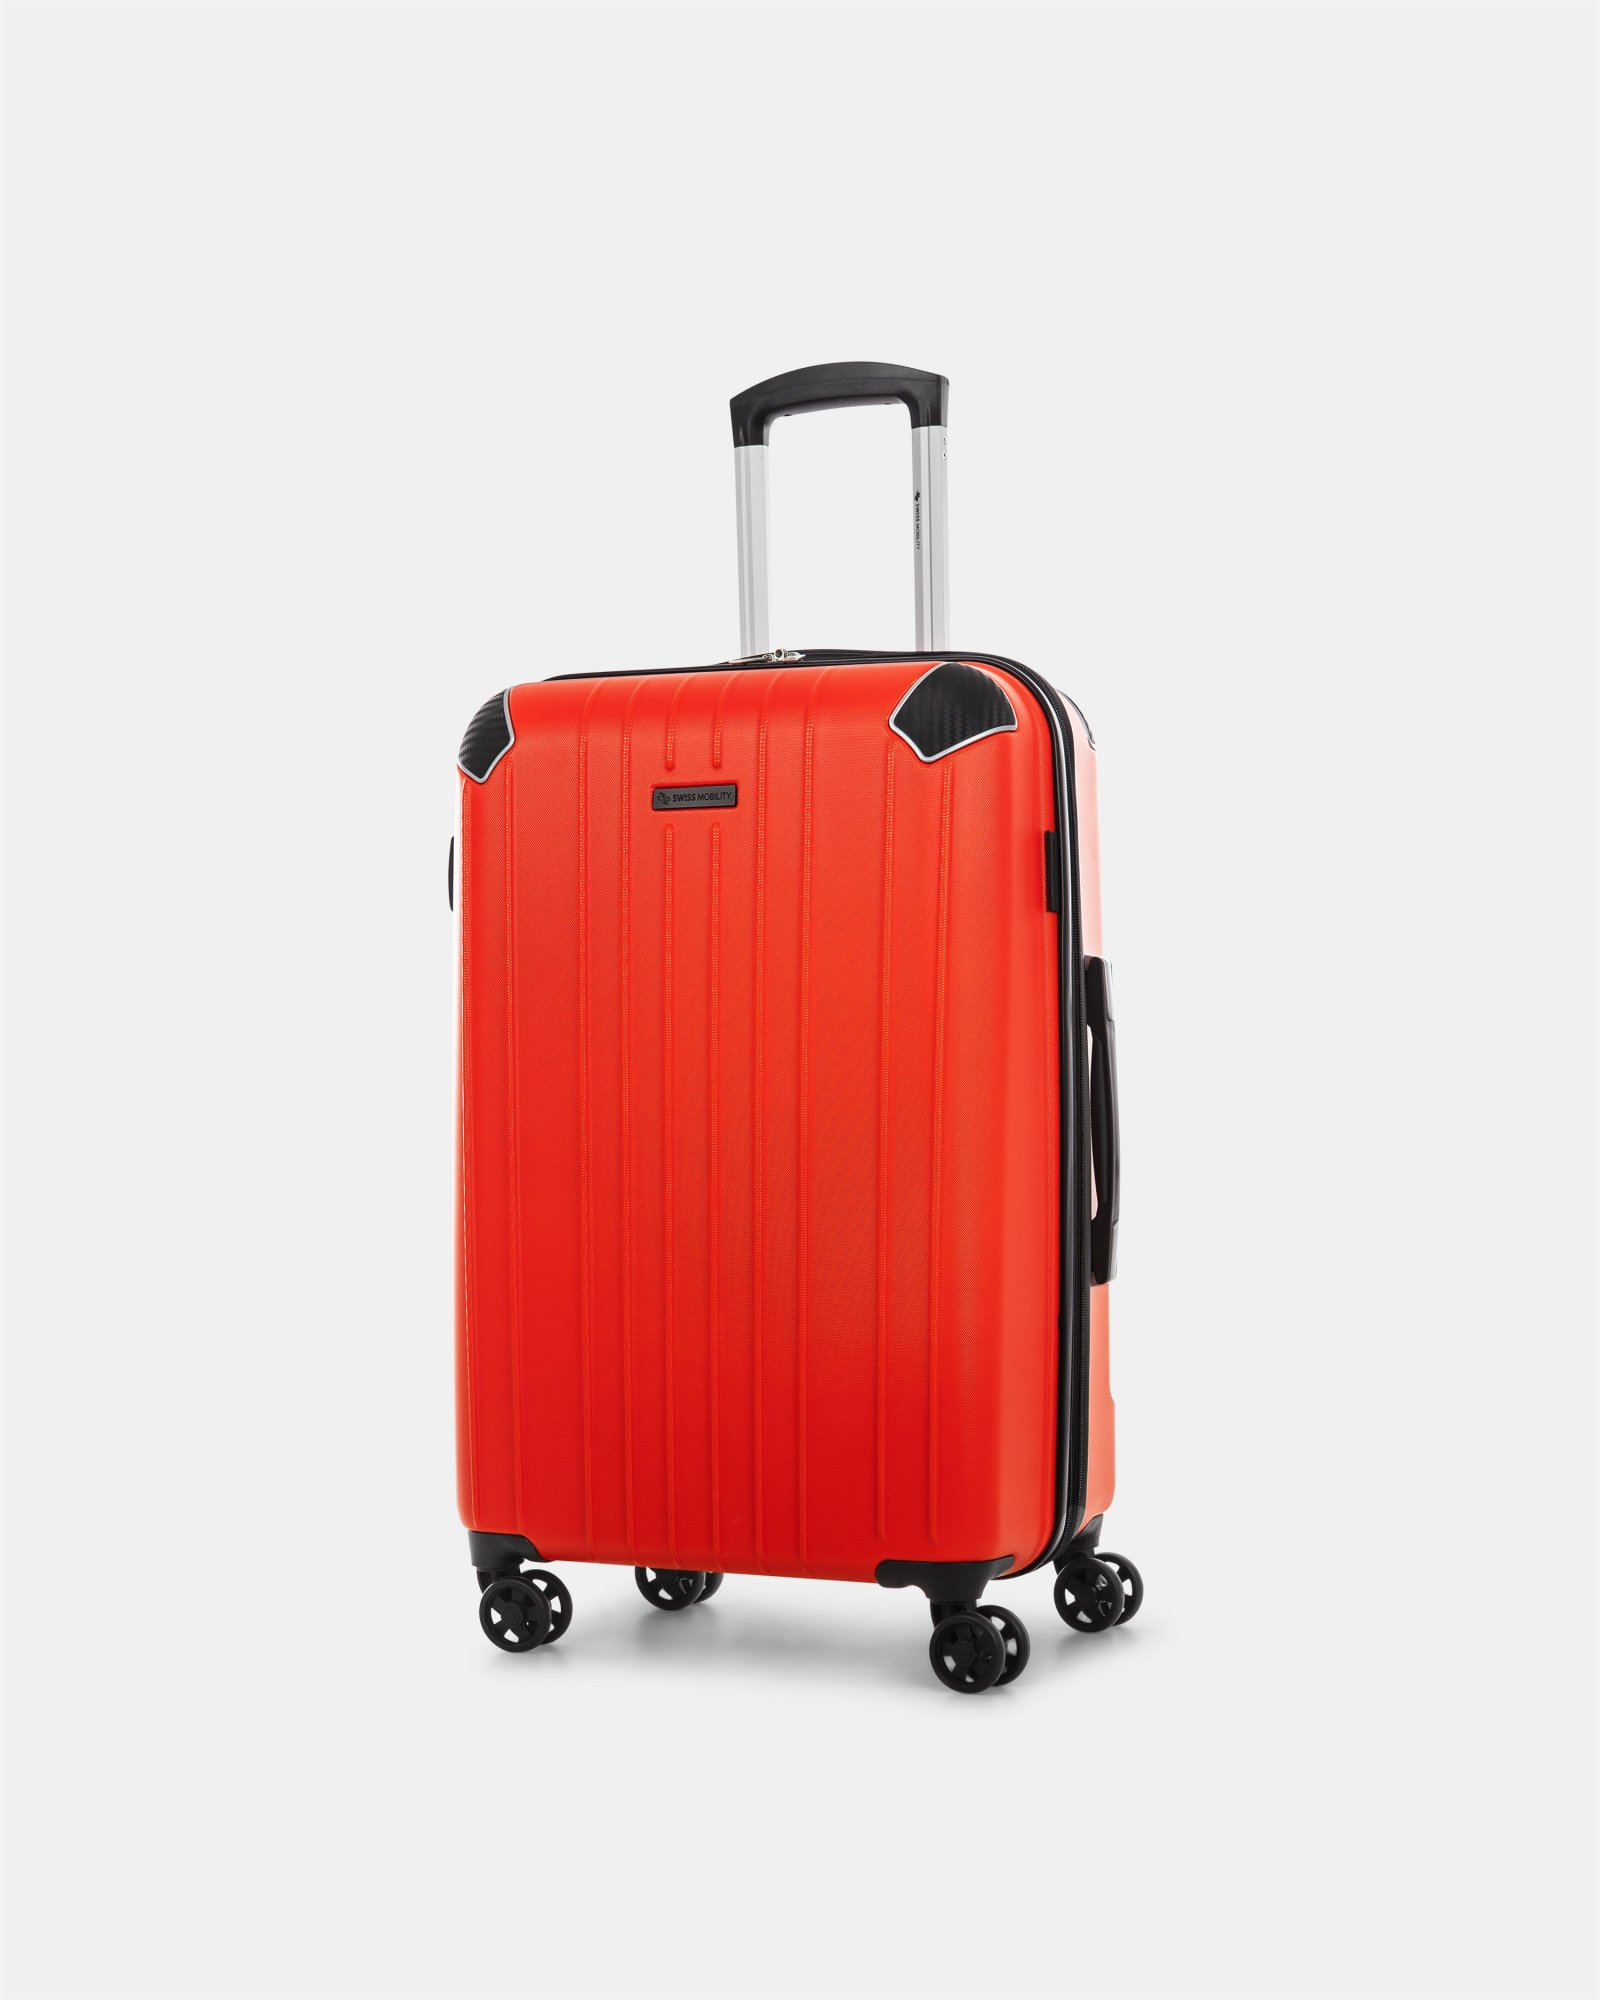 "PVG - 26"" LIGHTWEIGHT HARDSIDE LUGGAGE - RED - Swiss Mobility - Zoom"